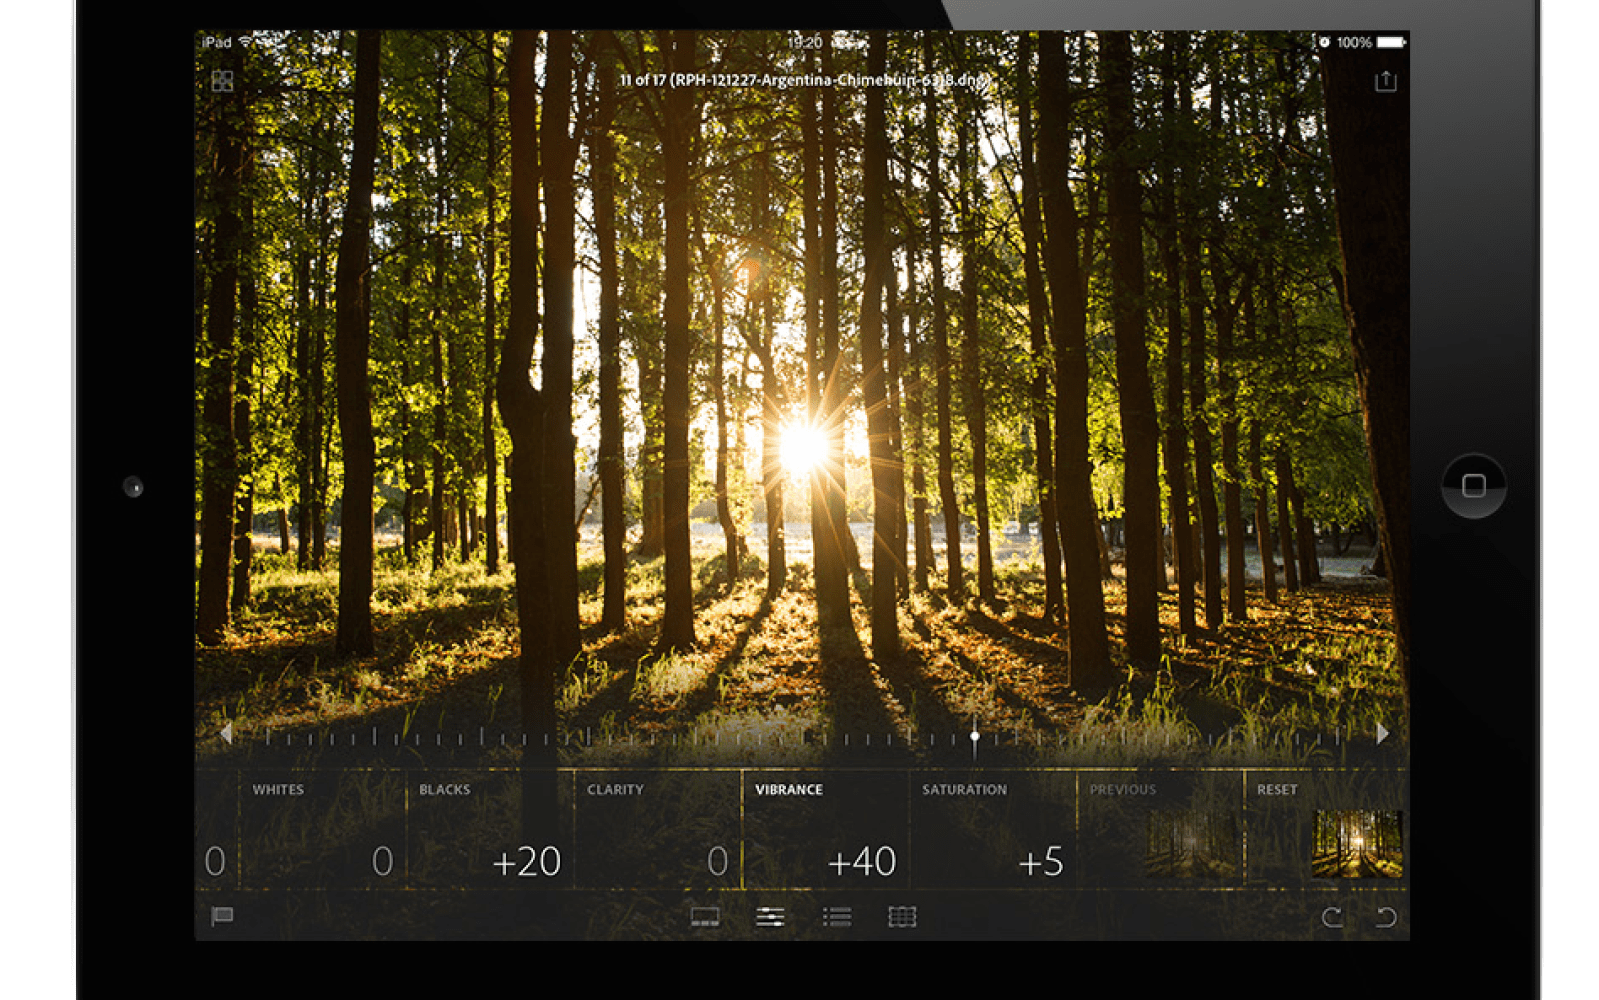 Adobe debuts Lightroom Mobile for iPad with powerful, on-the-go photo editing